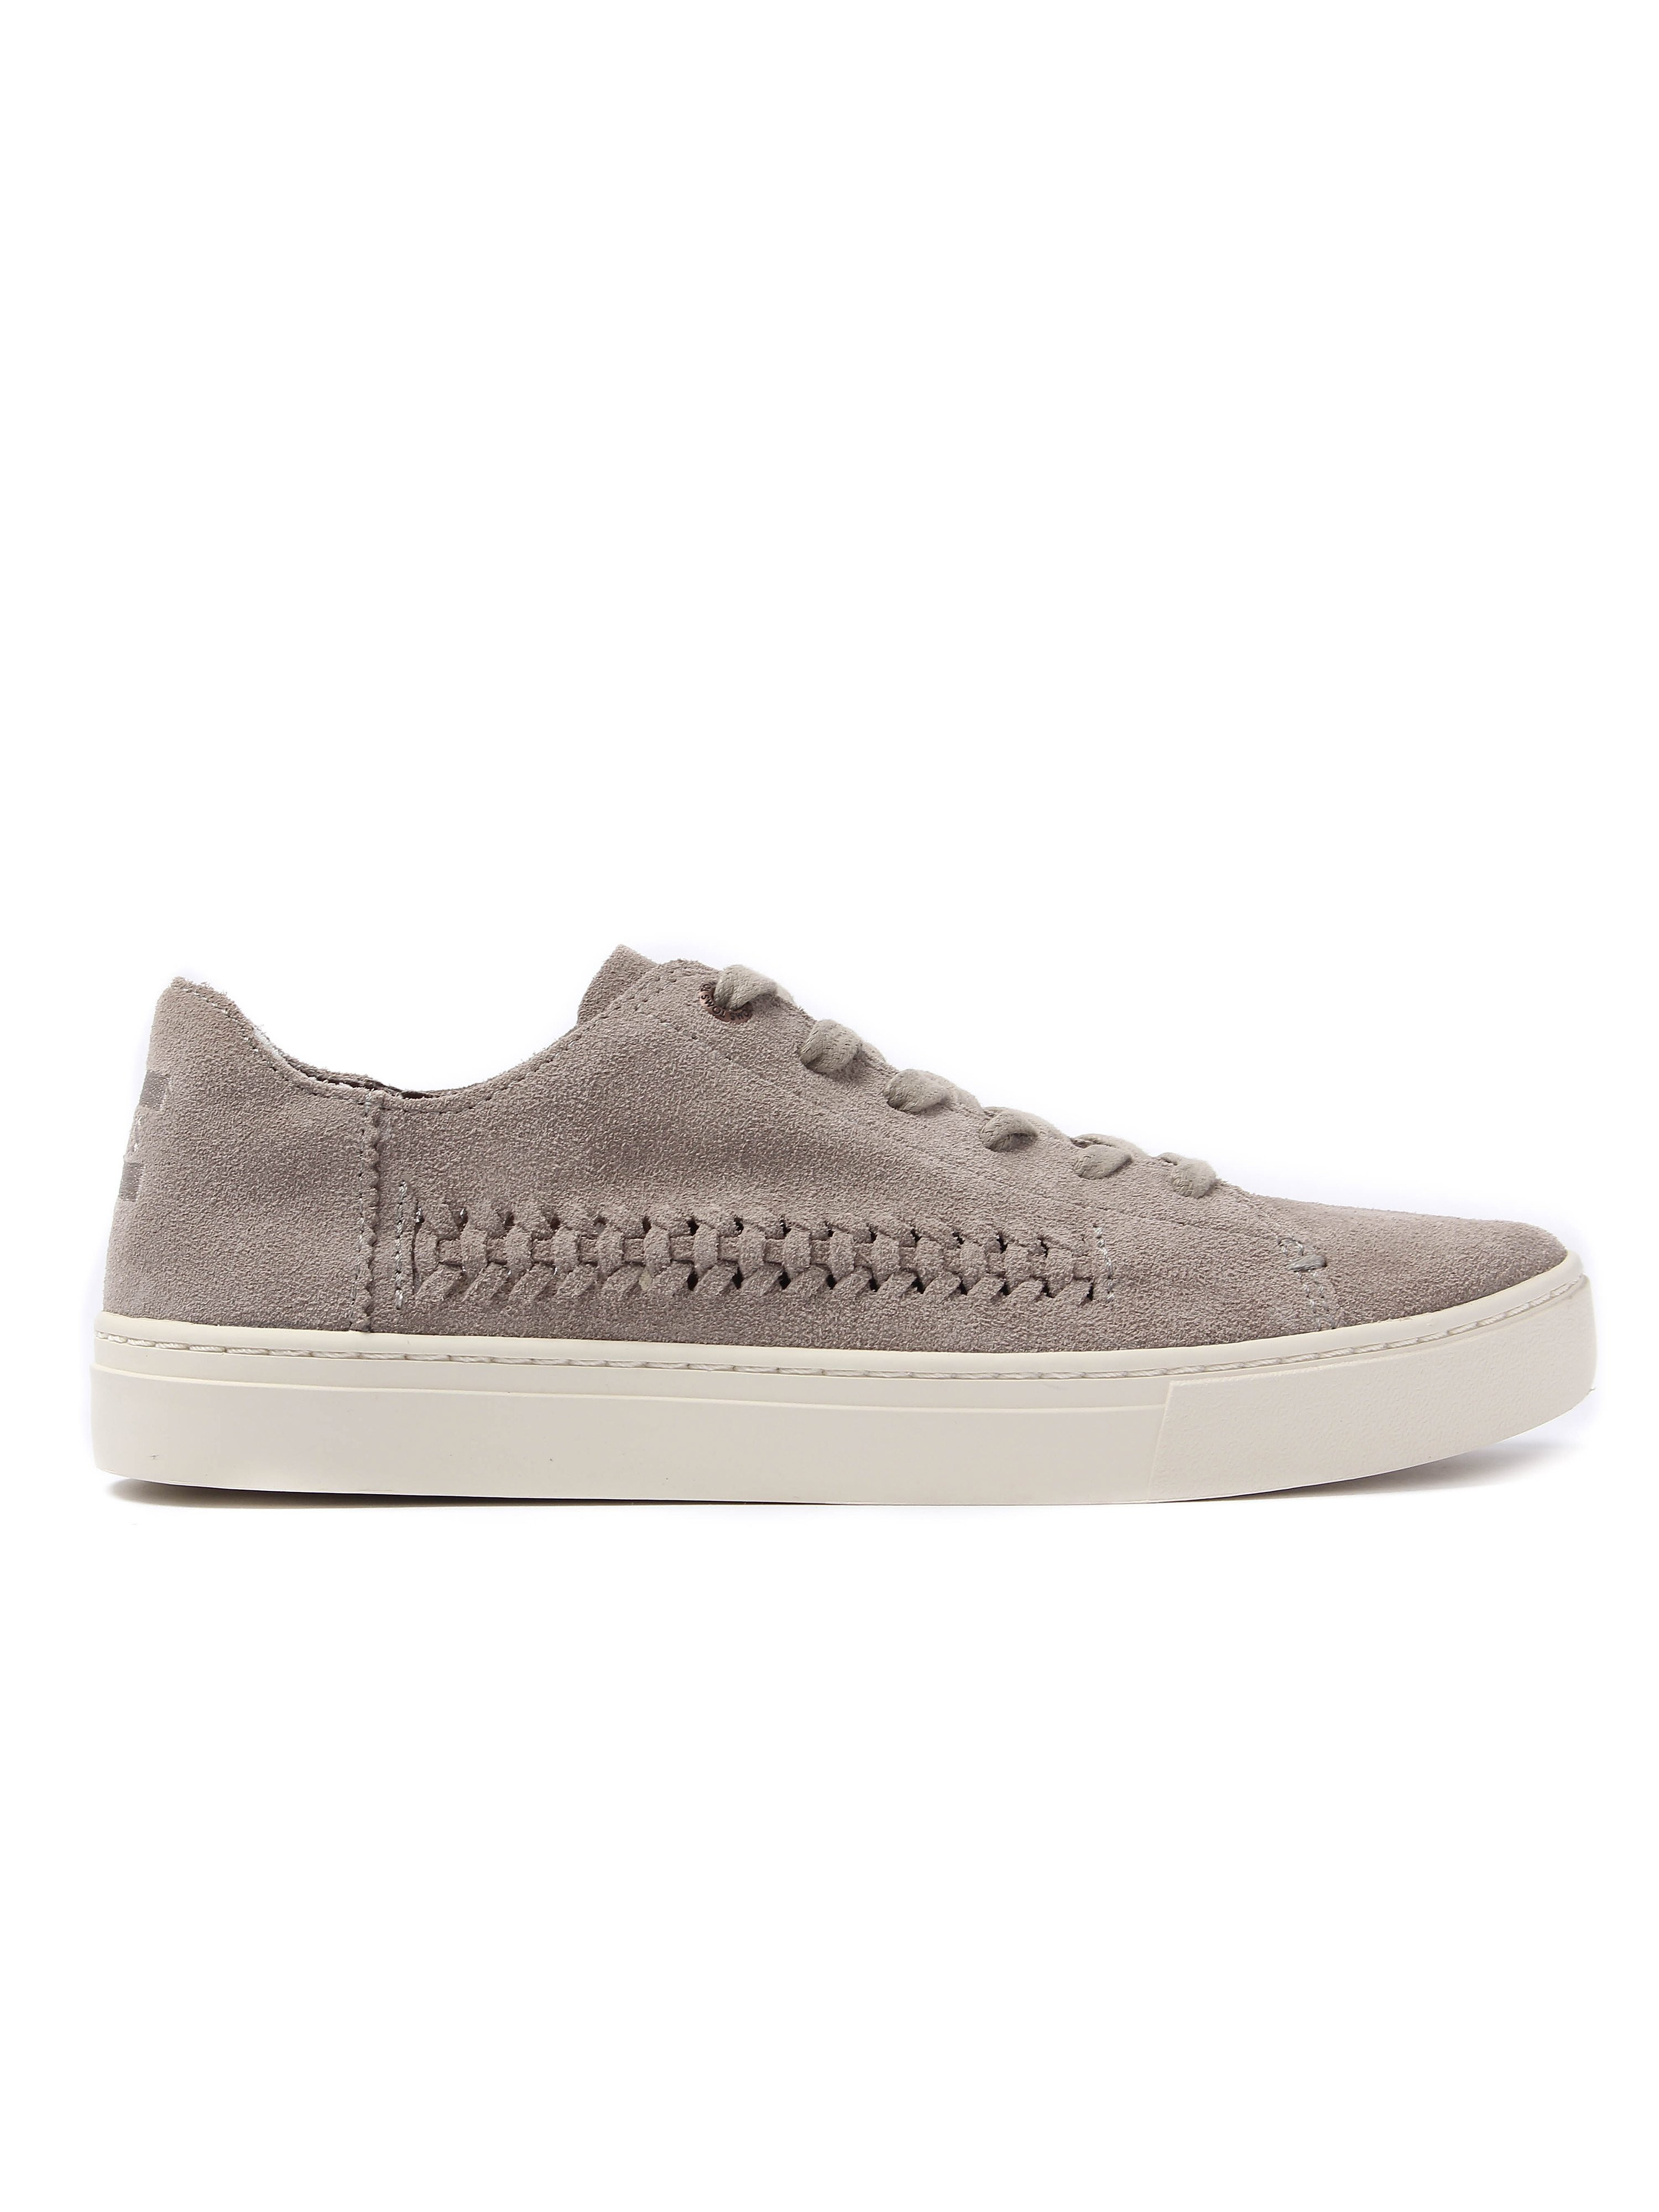 Toms Women's Lenox Deconstructed Suede & Woven Detail Trainers - Desert Taupe